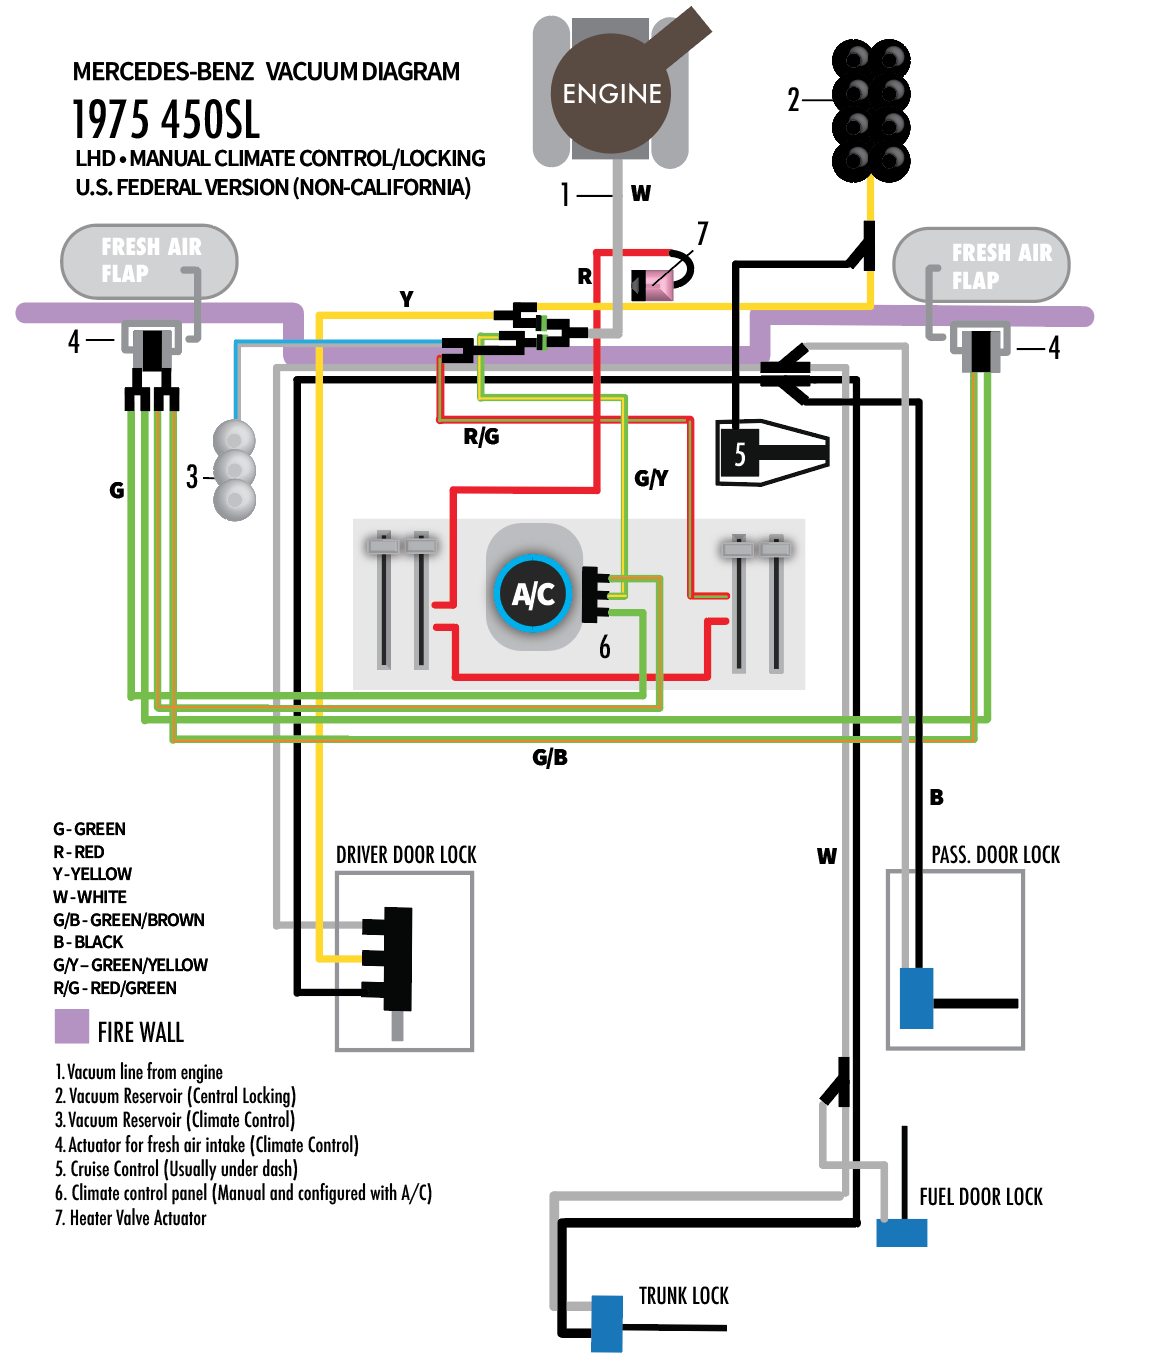 Mercedes Benz Diagram Enthusiast Wiring Diagrams Mb C300 W123 And R107 Diy Vacuum Rh Mercedesdiy Blogspot Com